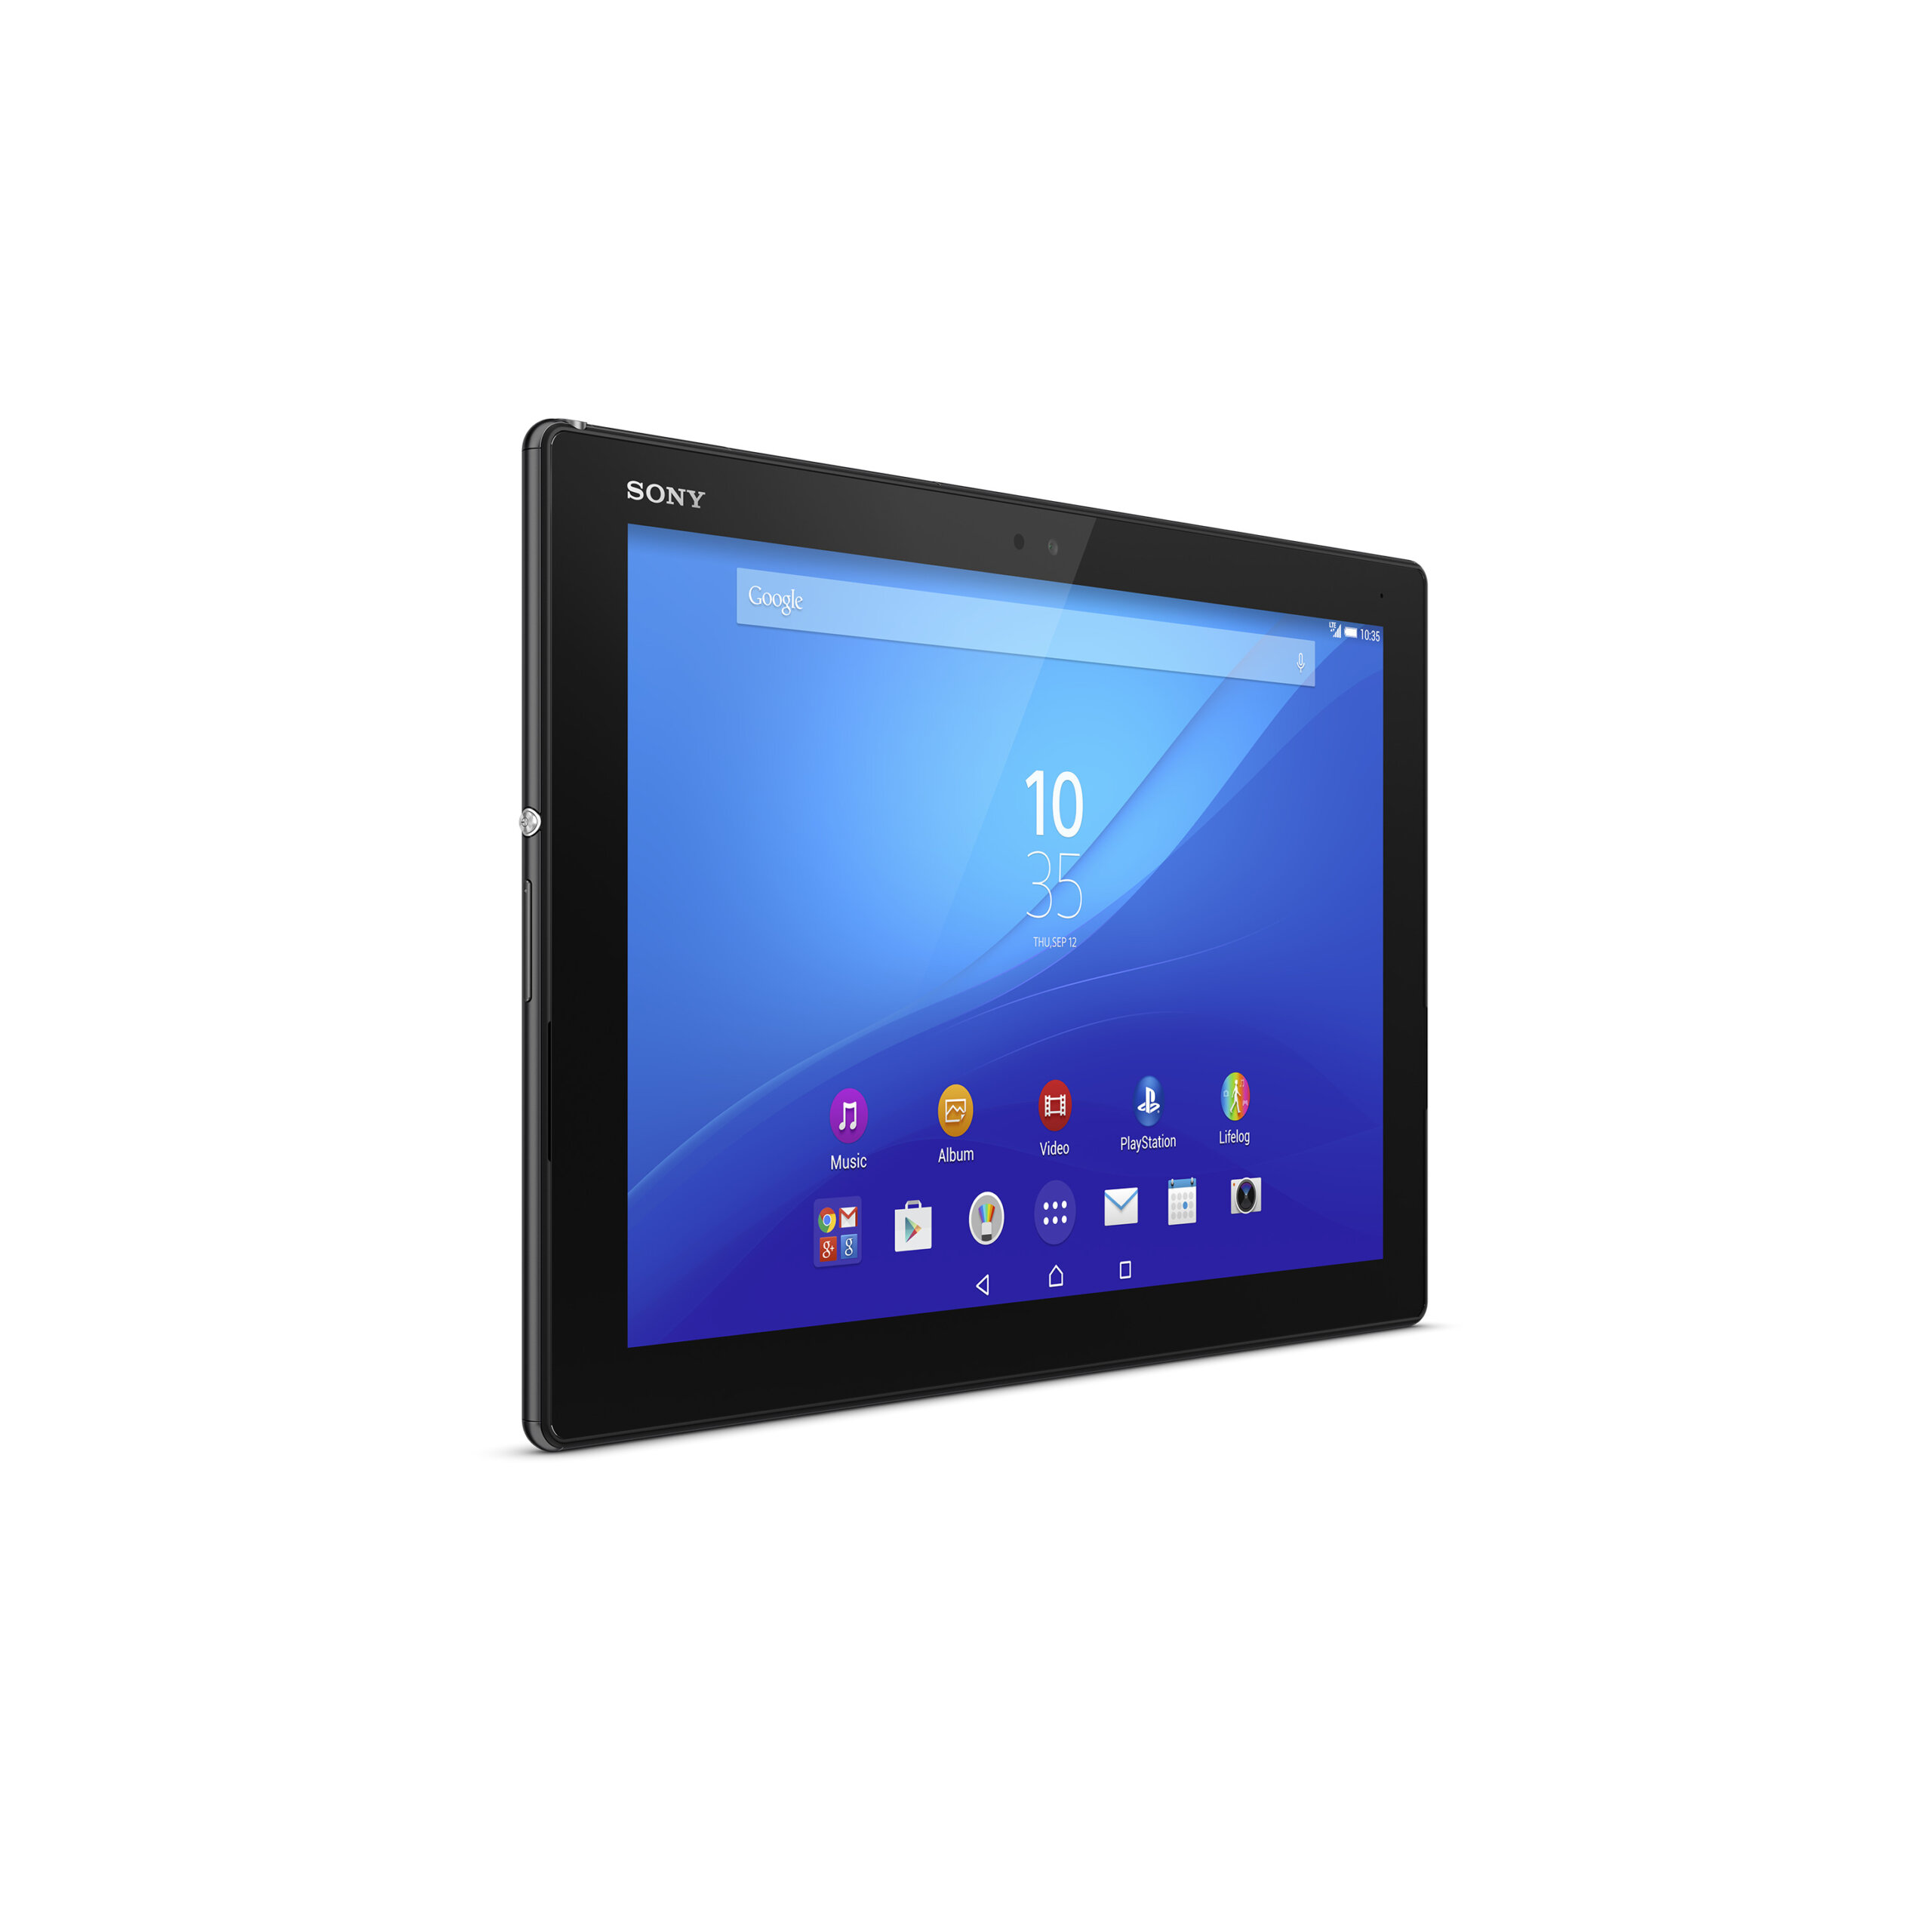 Sony Xperia Z4 Tablet scaled